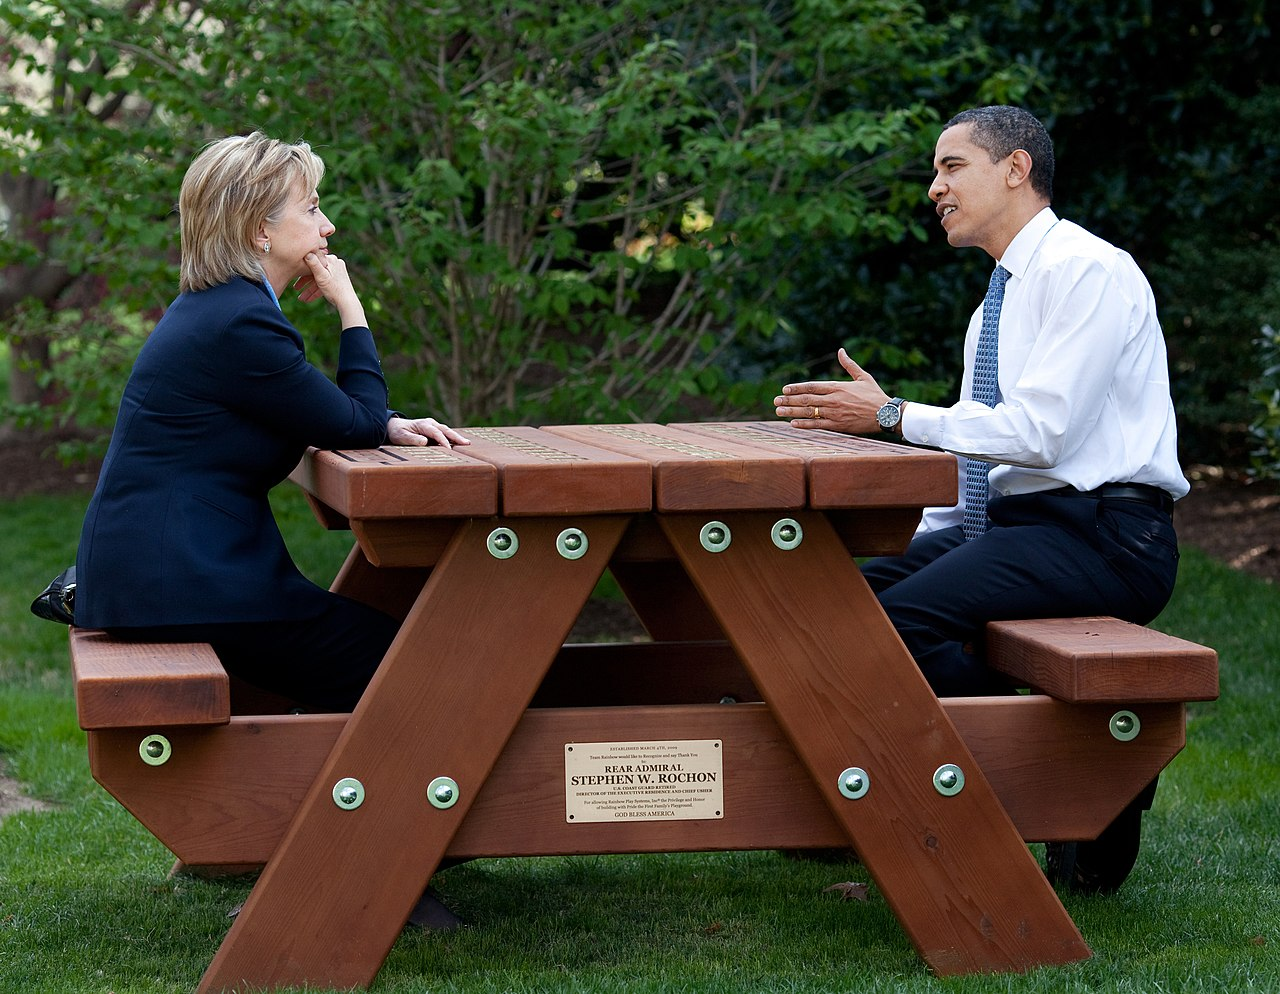 File:Barack Obama And Hillary Clinton Speakings Together